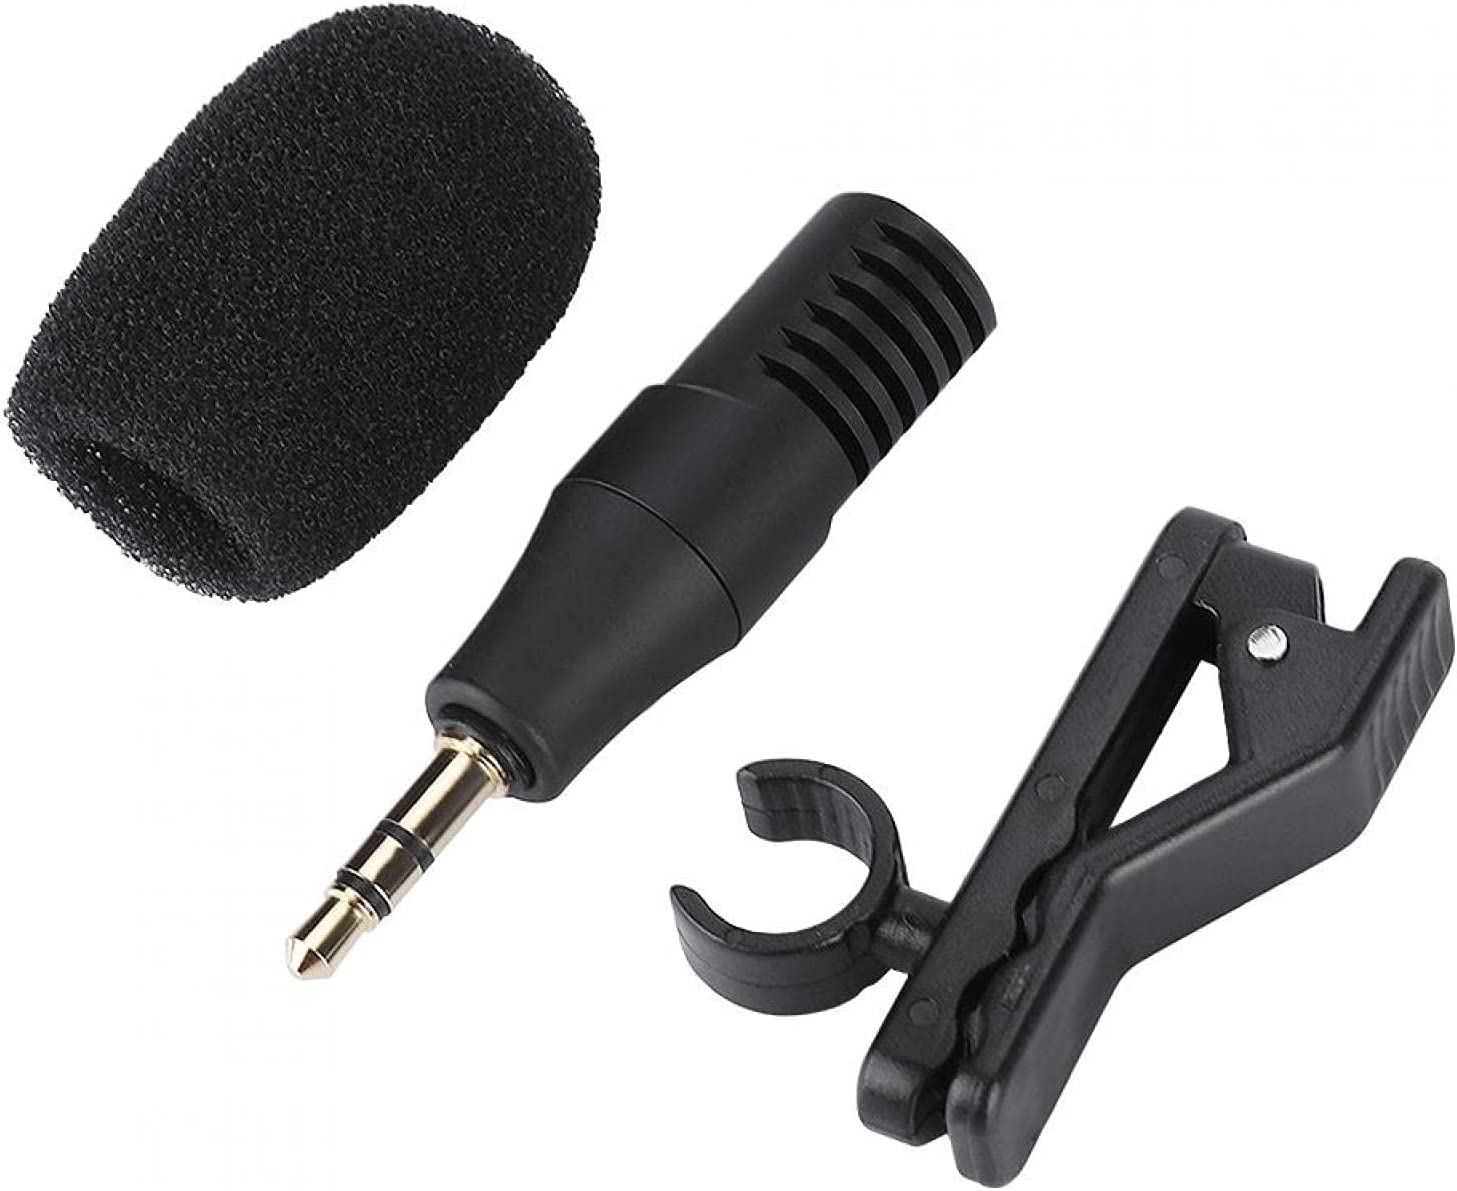 Microphone Low Noise Save money Easy to Animer and price revision Phone for Laptop use